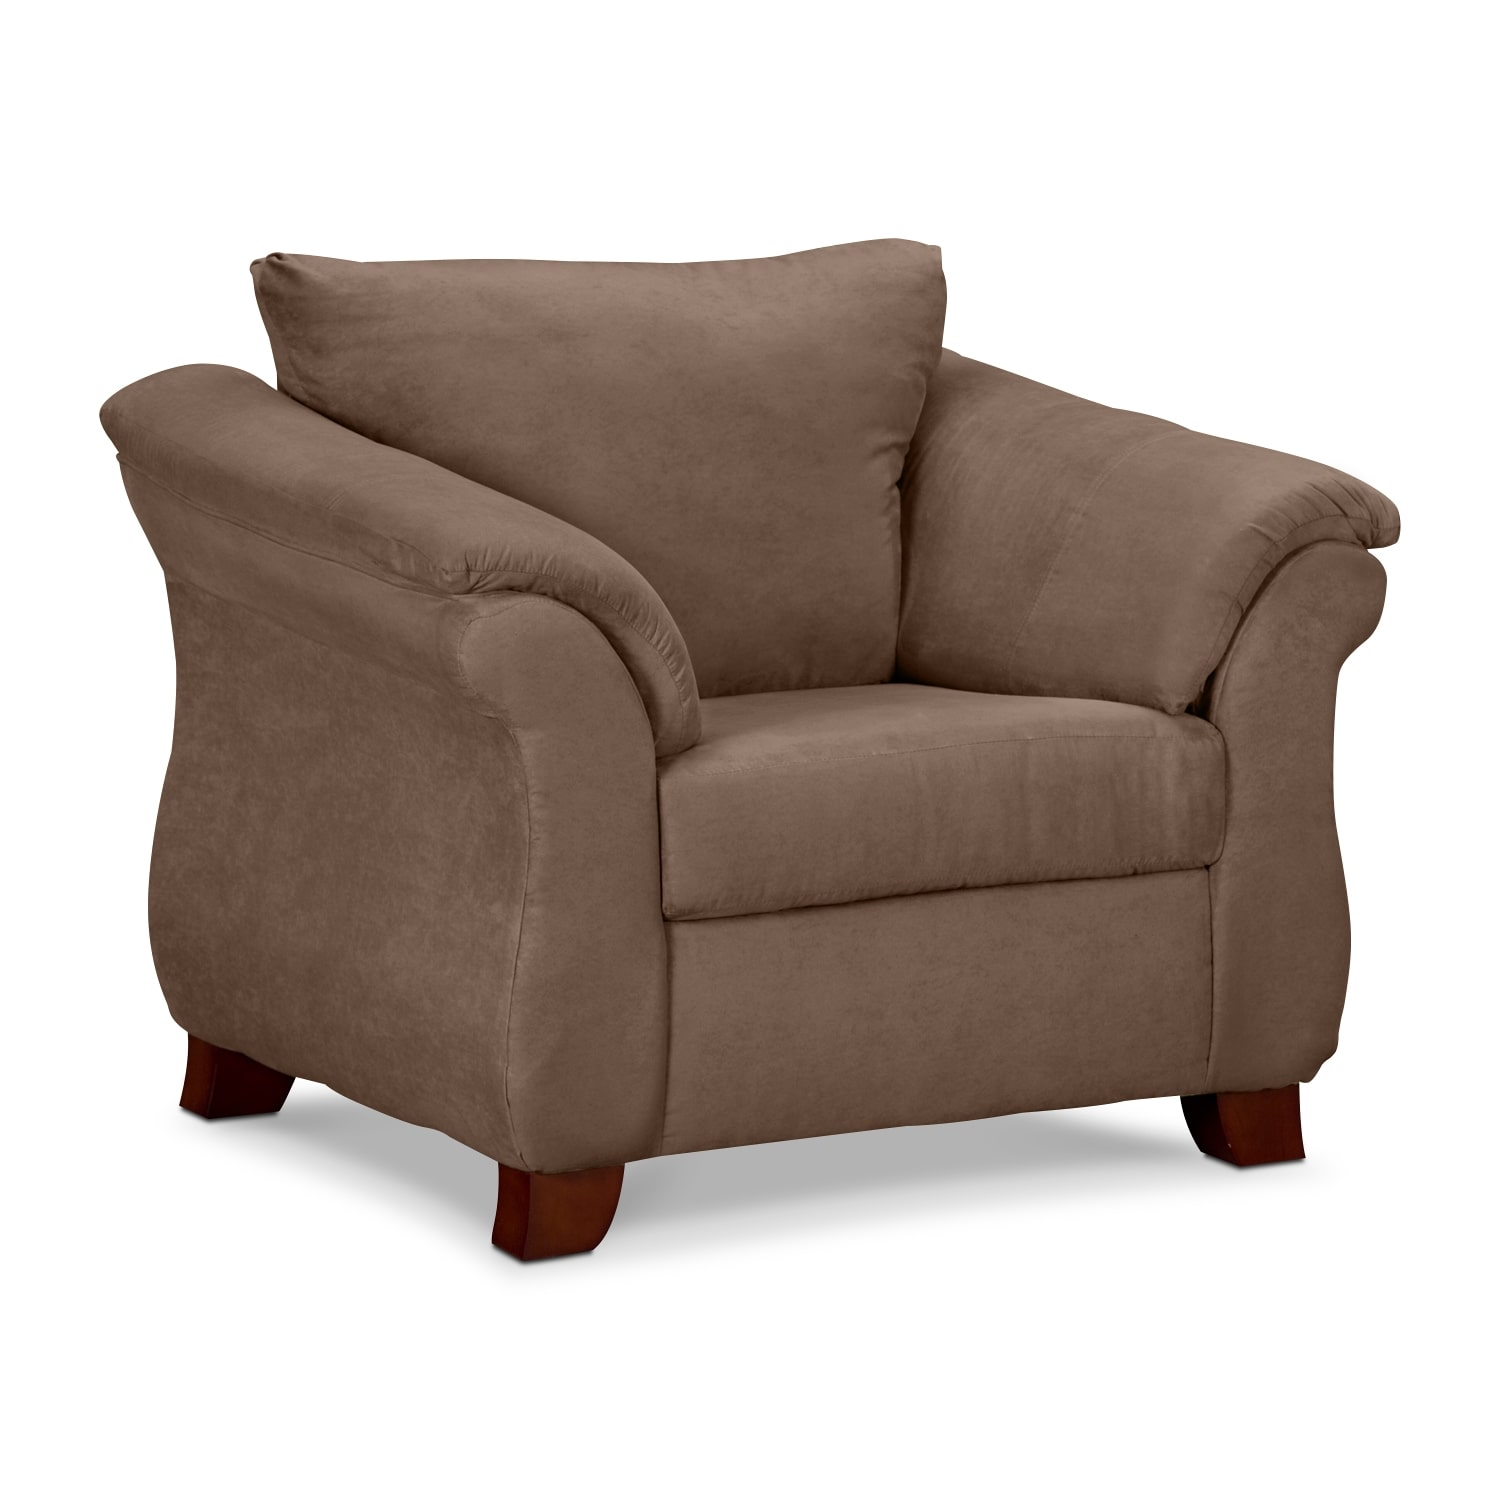 Adrian Chair - Taupe